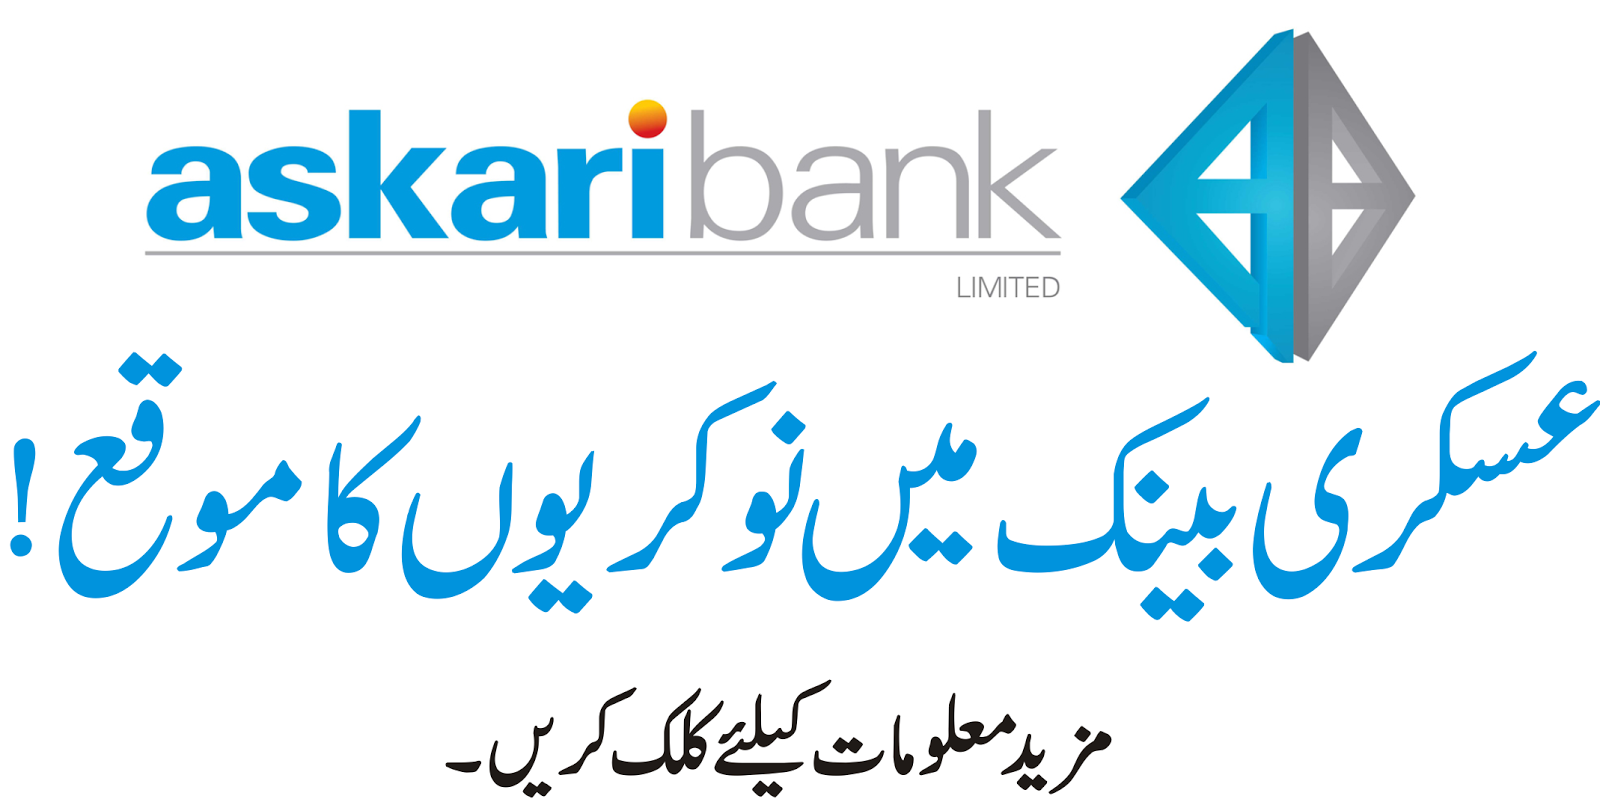 askari bank limited Askari bank limited - bahrain (abl) - company details get up-to-date business information, contact details, latest news and press releases and people contacts on zawyacom - mena edition.